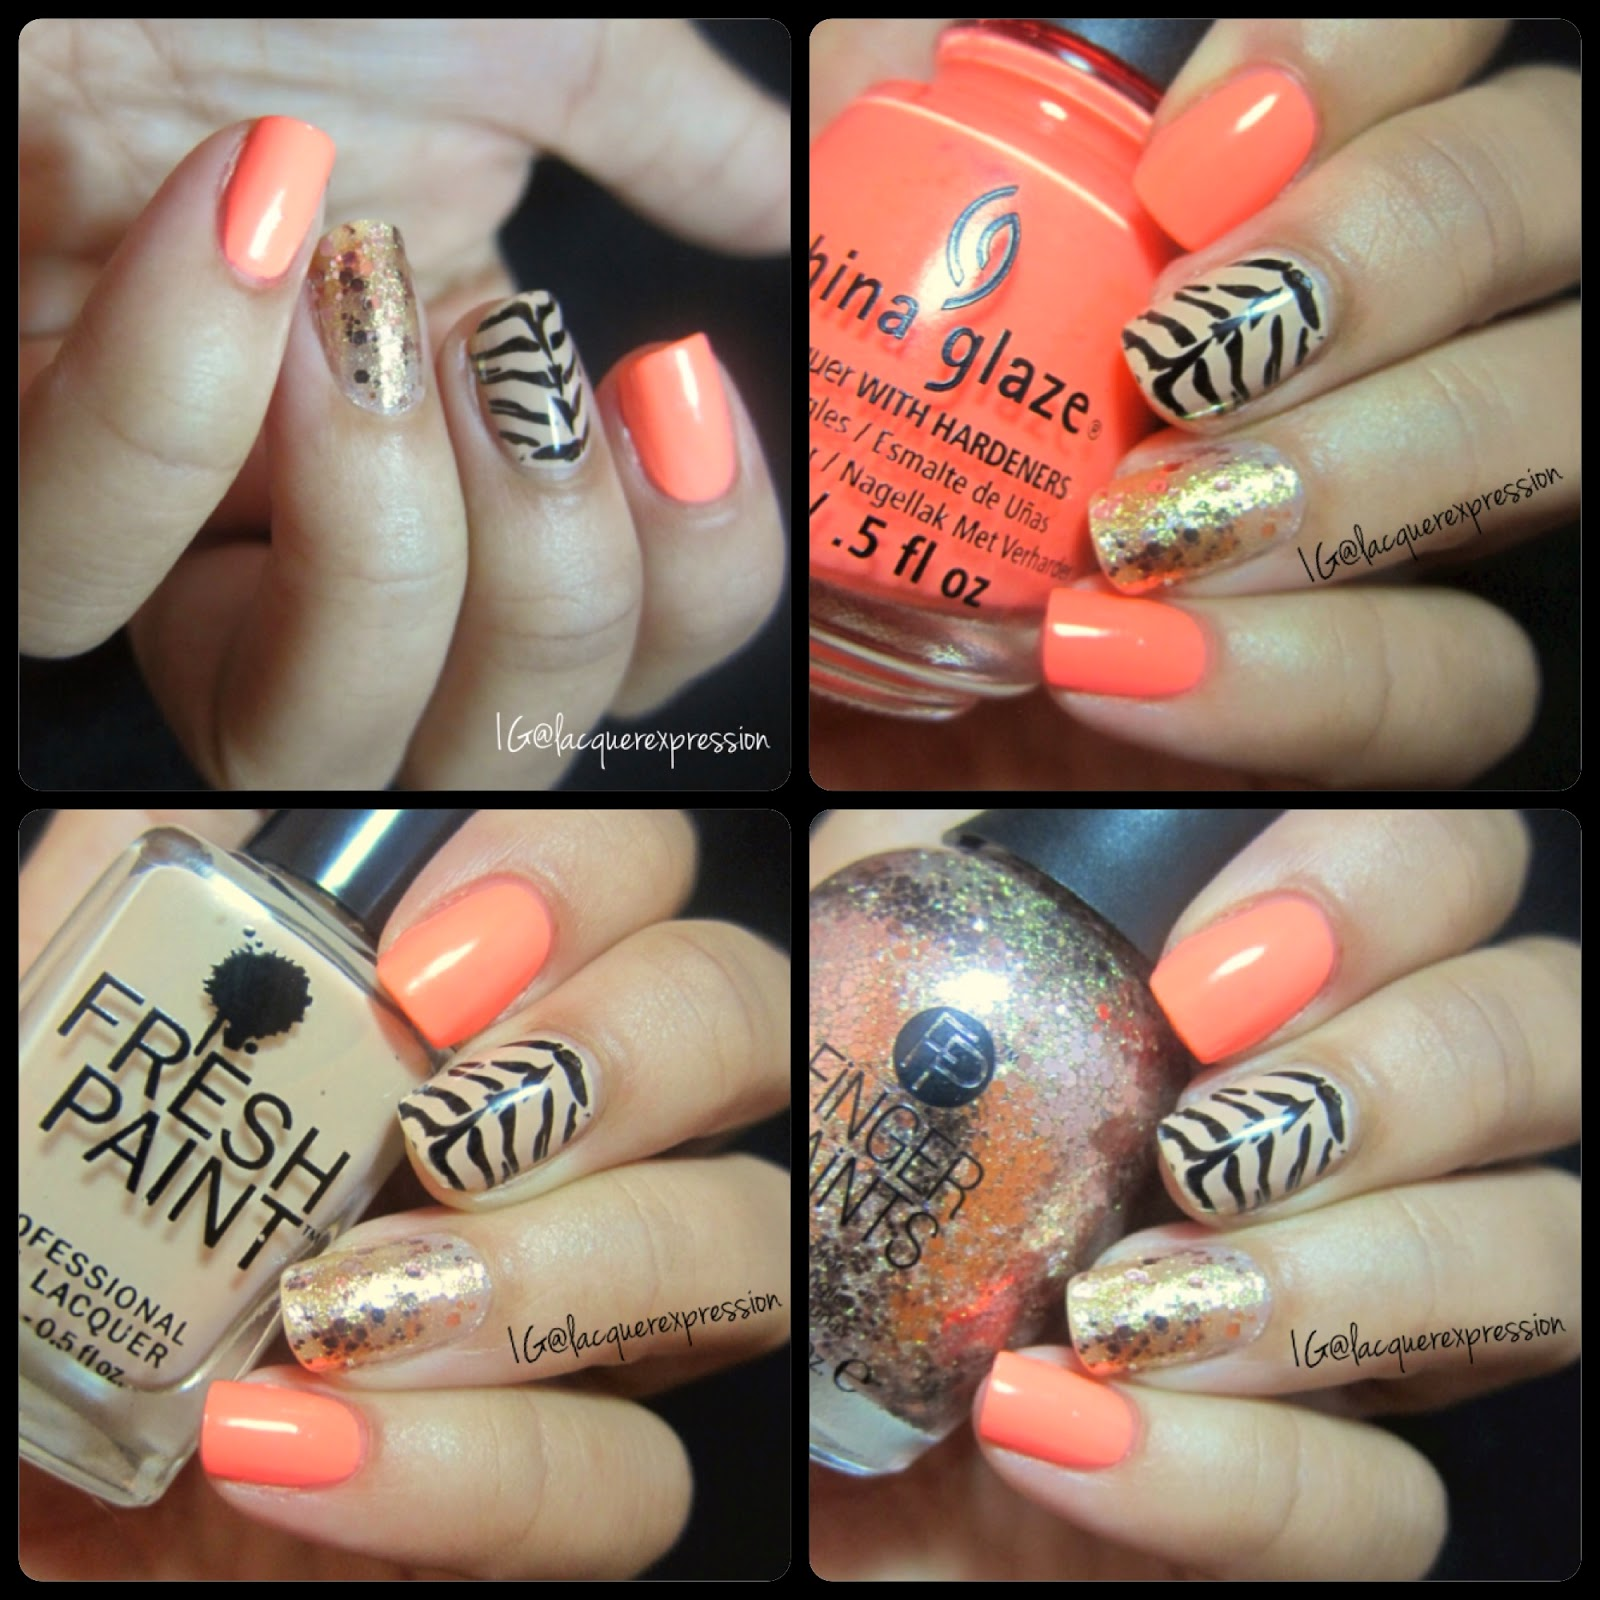 Nail Art - Neon Manicure Featuring Flip Flop Fantasy